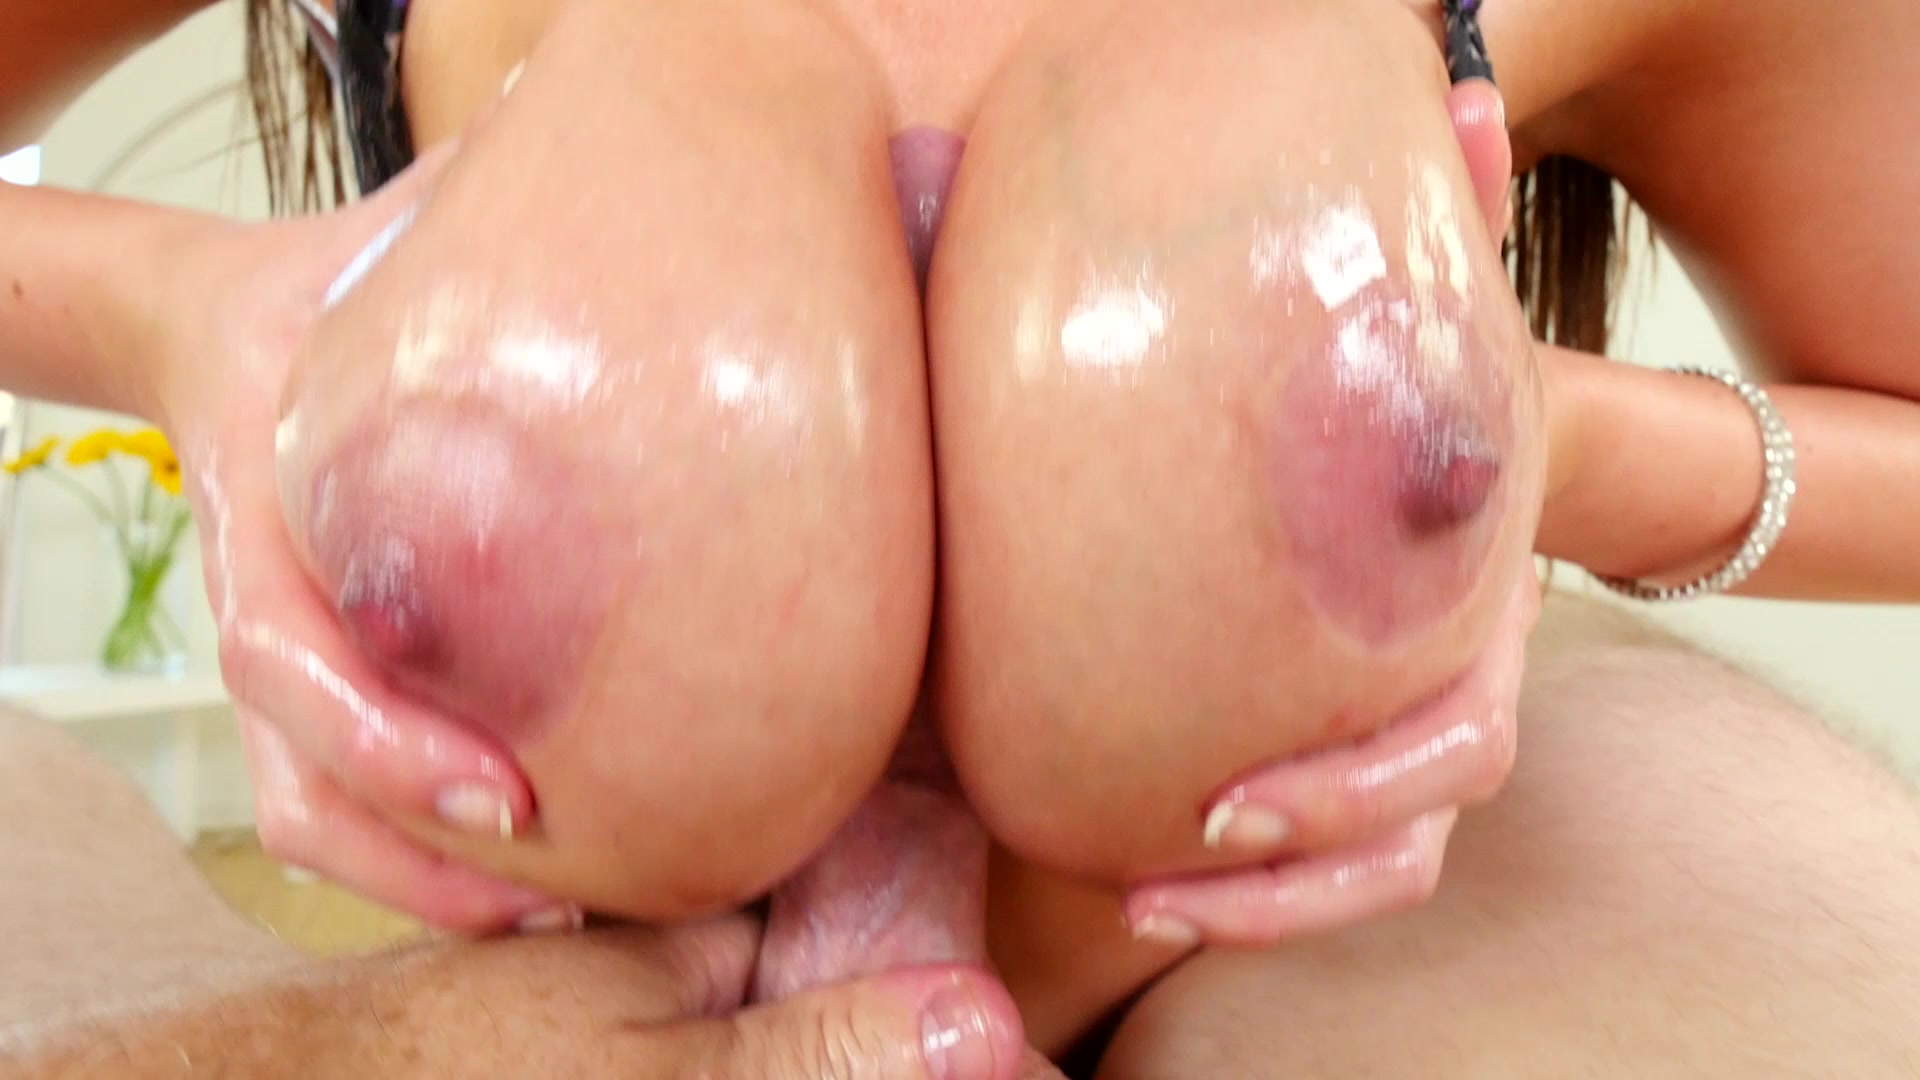 Free HQ Thicc Juicy American Pussy POV Titfuck Porn Photo